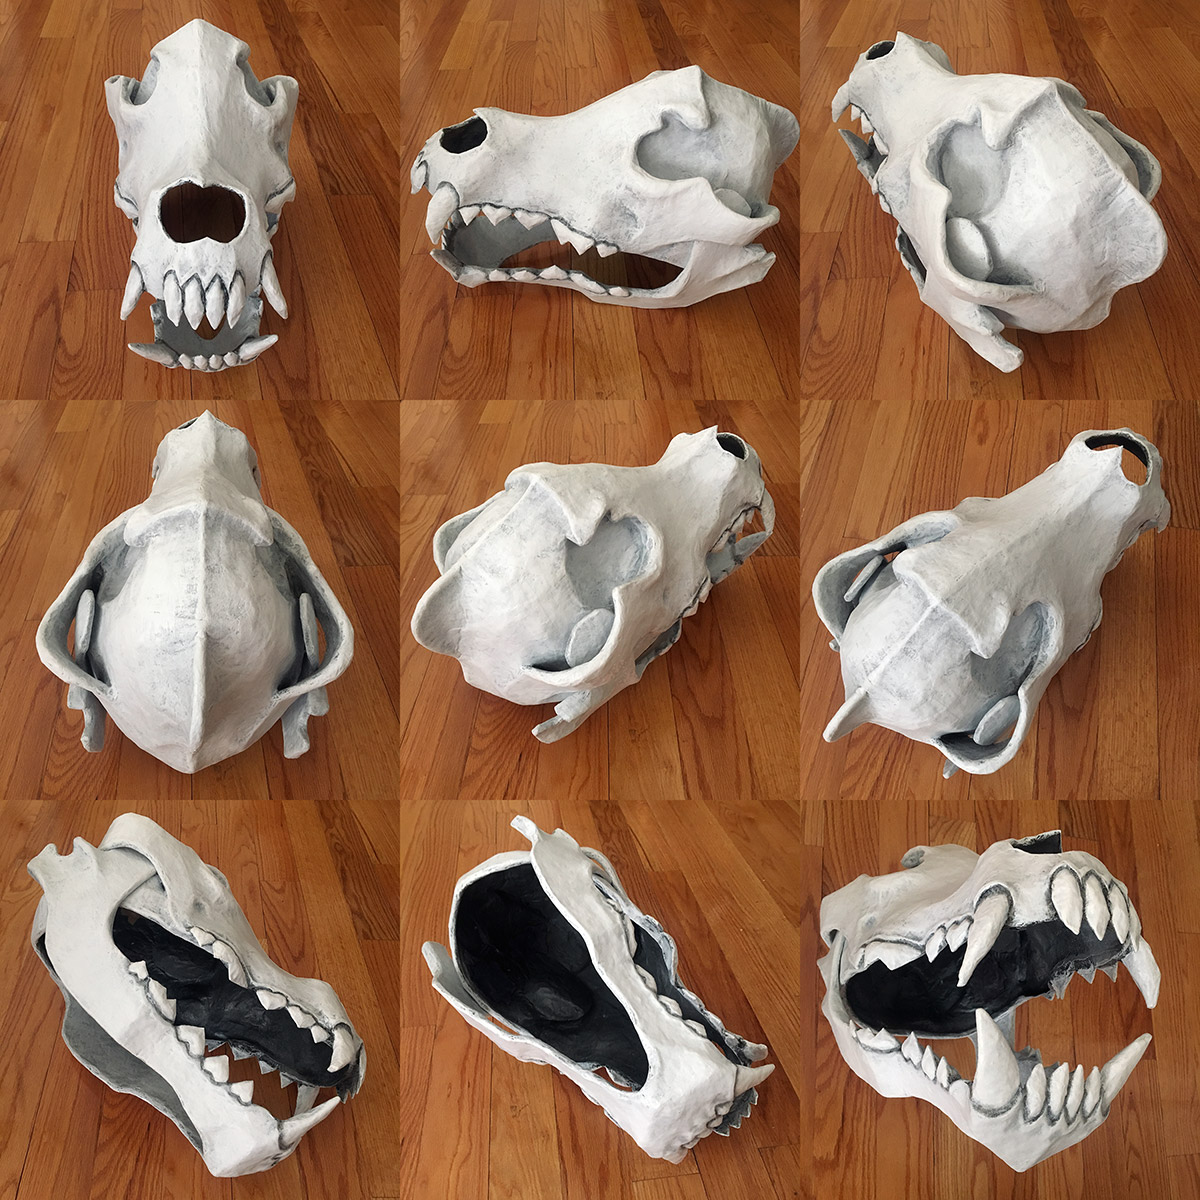 Paper mache wolf skull mask - different angles